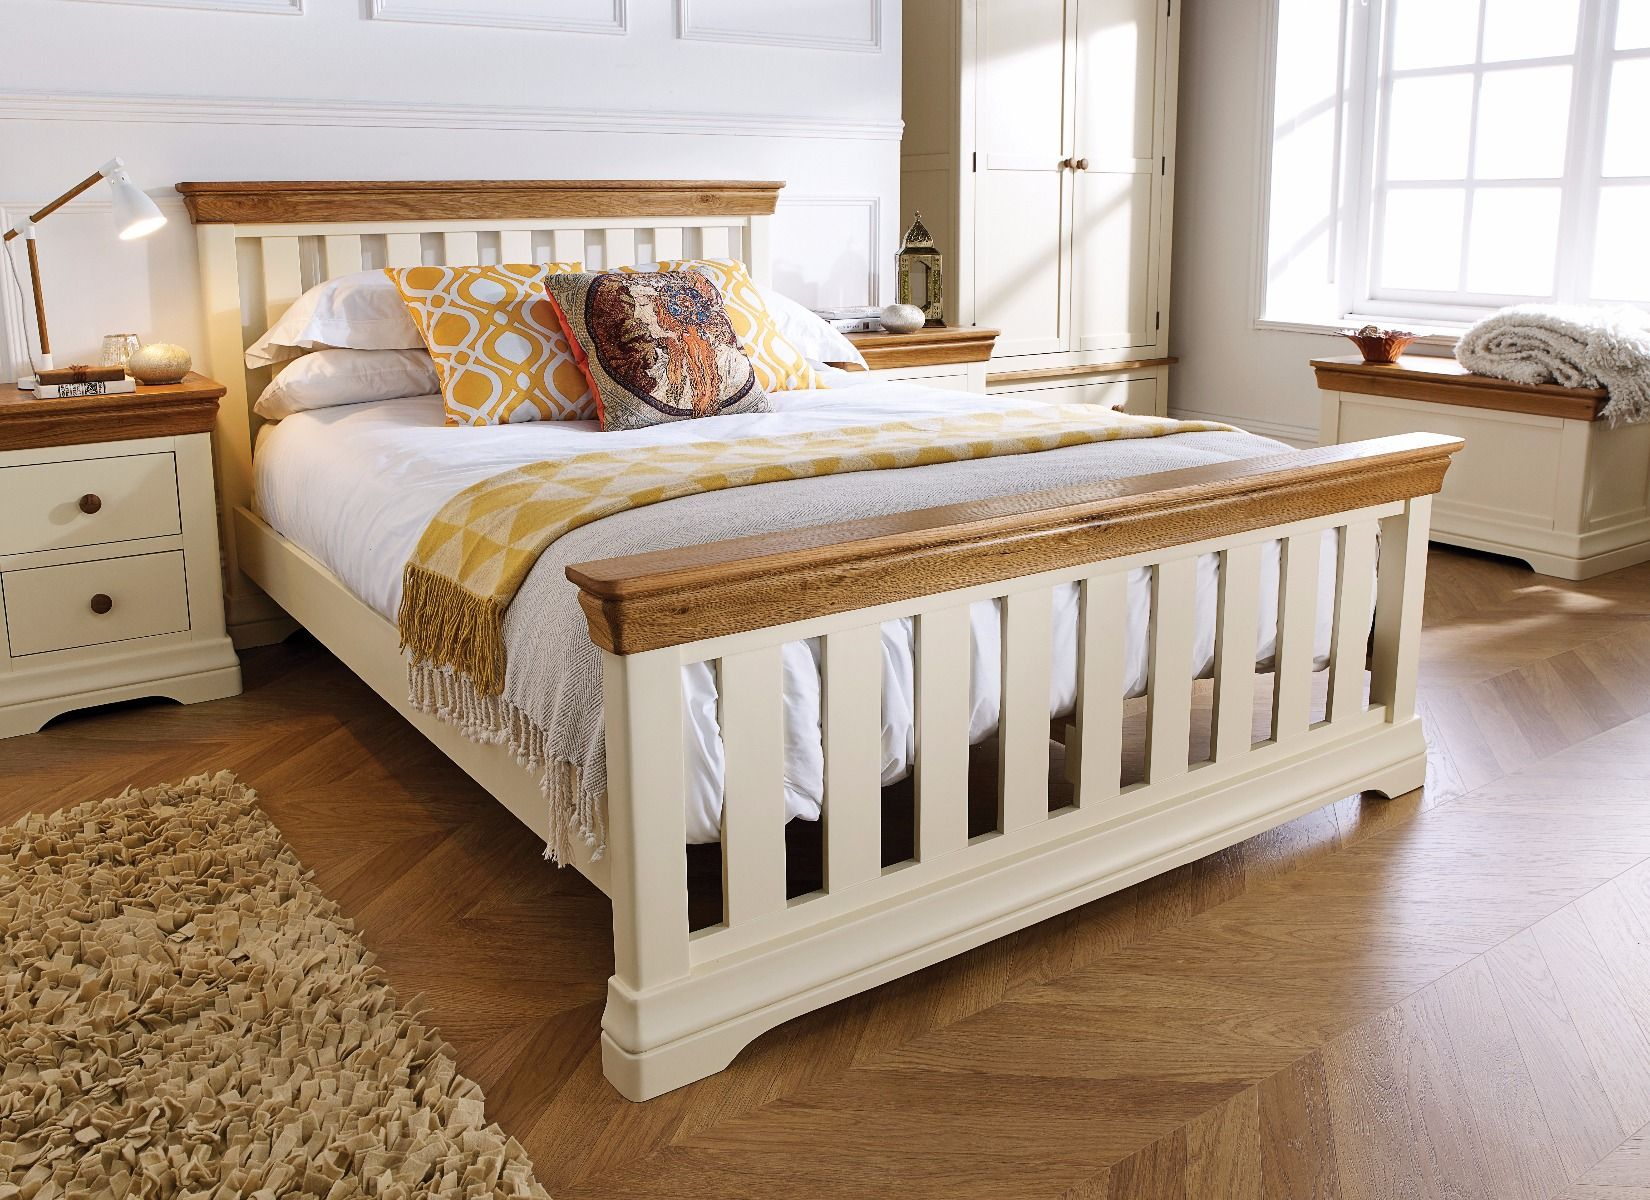 Picture of: Cream Painted Slatted 5 Foot King Size Oak Bed Free Delivery Top Furniture